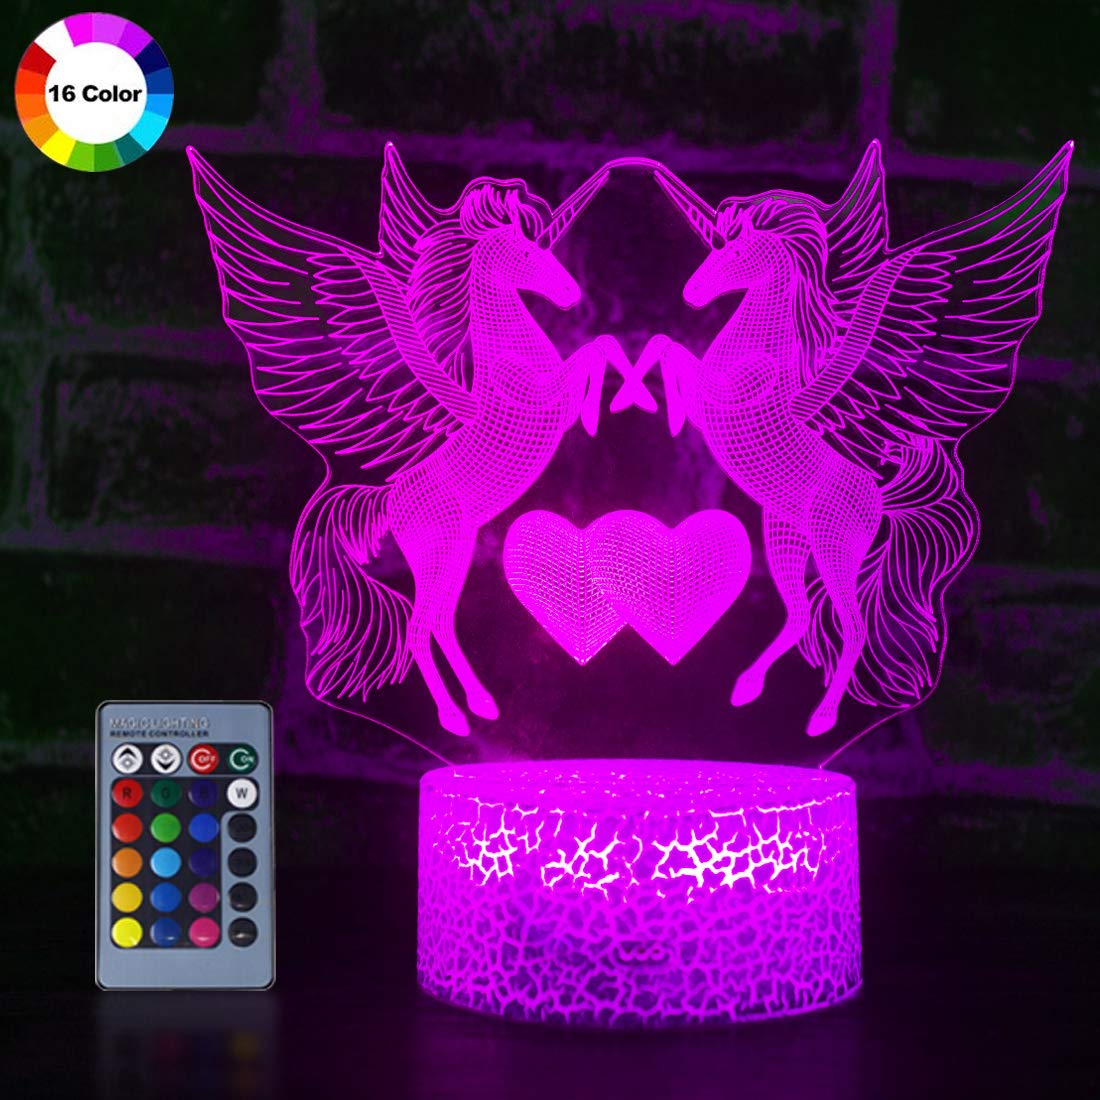 Unicorn 3D Night Light for Girls, Optical Illusion Light Kids Room Decor Lighting and Girls Bedside Lamp with Remote Control as Boys Or Girls Birthday Gift or Christmas Gift (Double Unicorn)